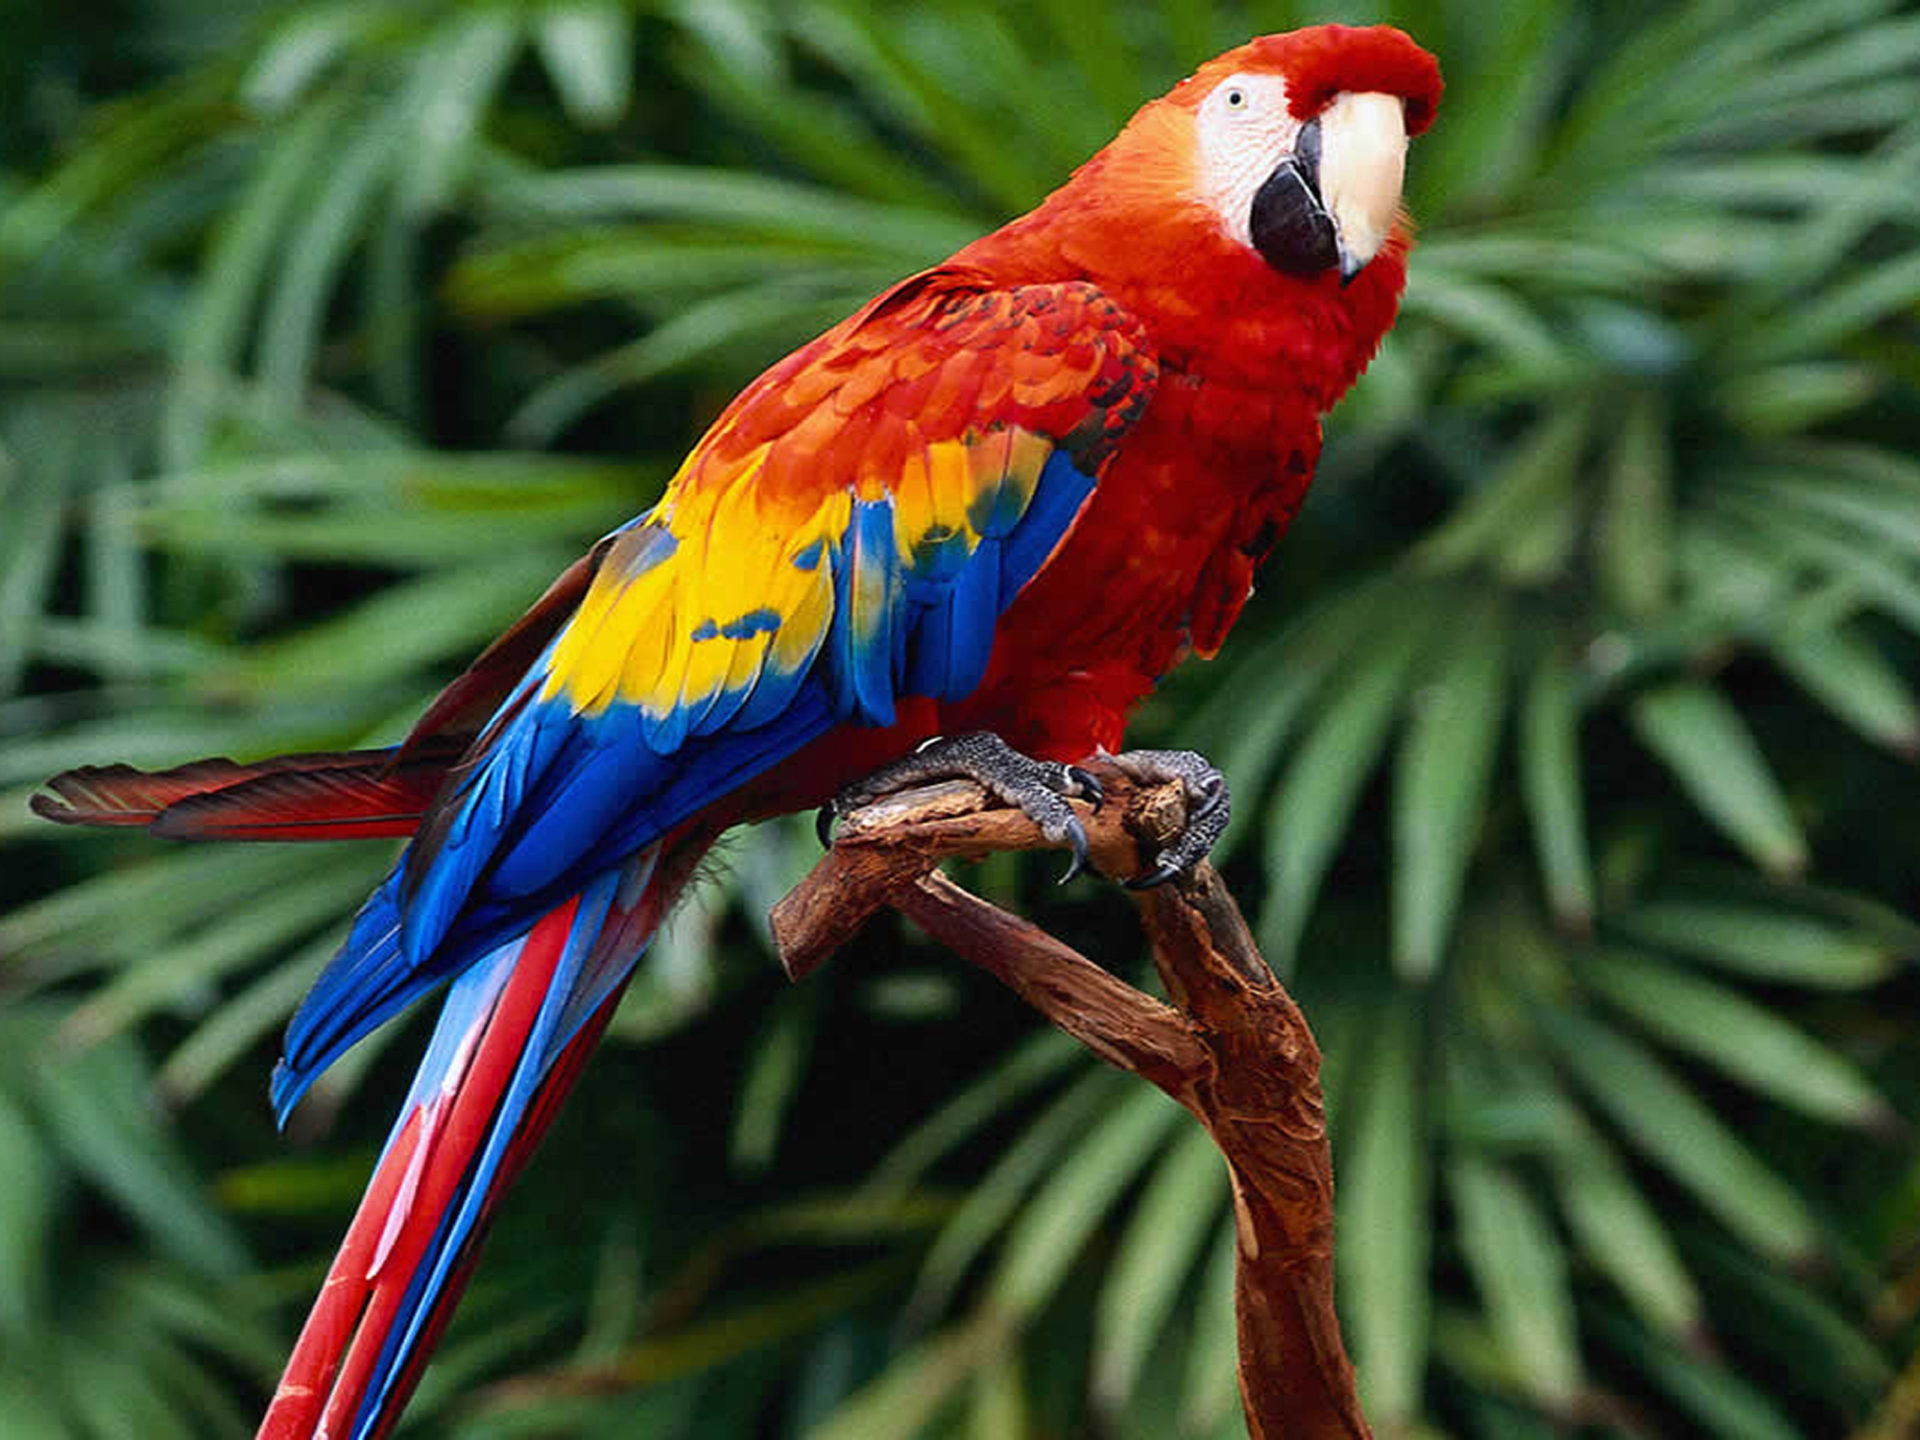 Gif As Wallpaper Iphone X Download Wallpapers Scarlet Macaws Widescreen 3840x2400